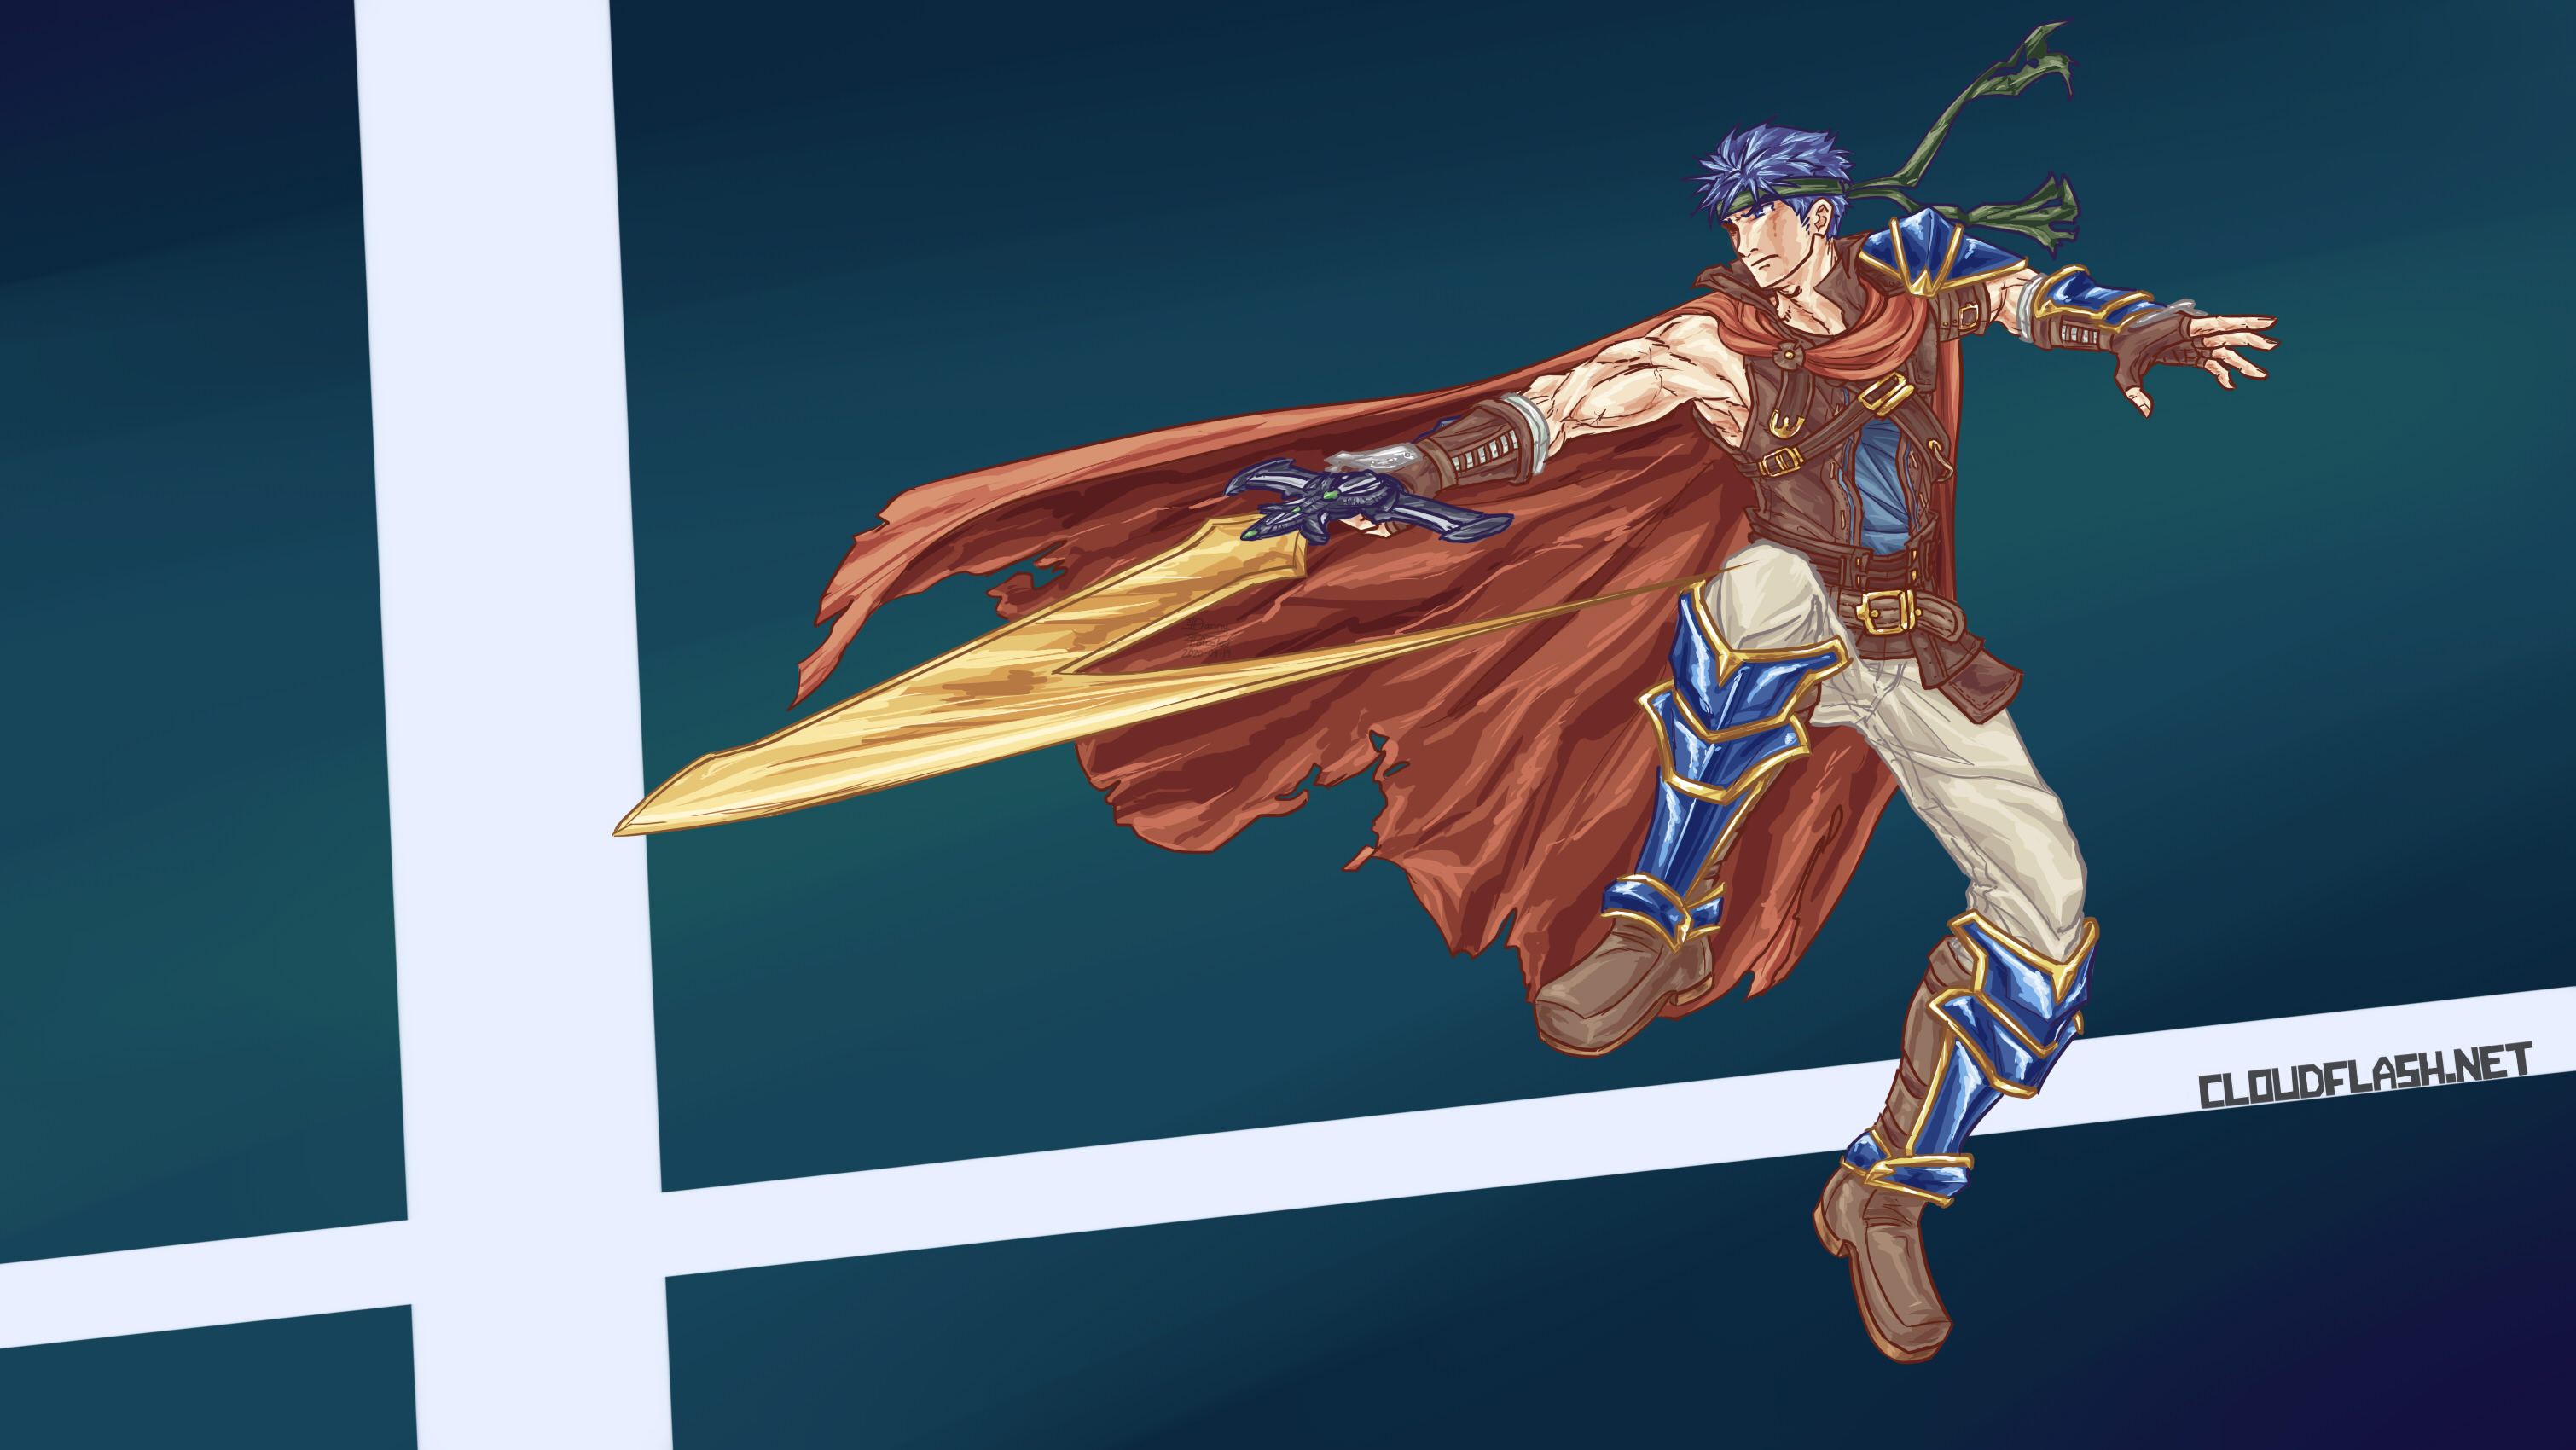 Super Smash Bros Ultimate Ike (Fire Emblem: Radiant Dawn adult version) - Repositioning Slash by Danny Poloskei